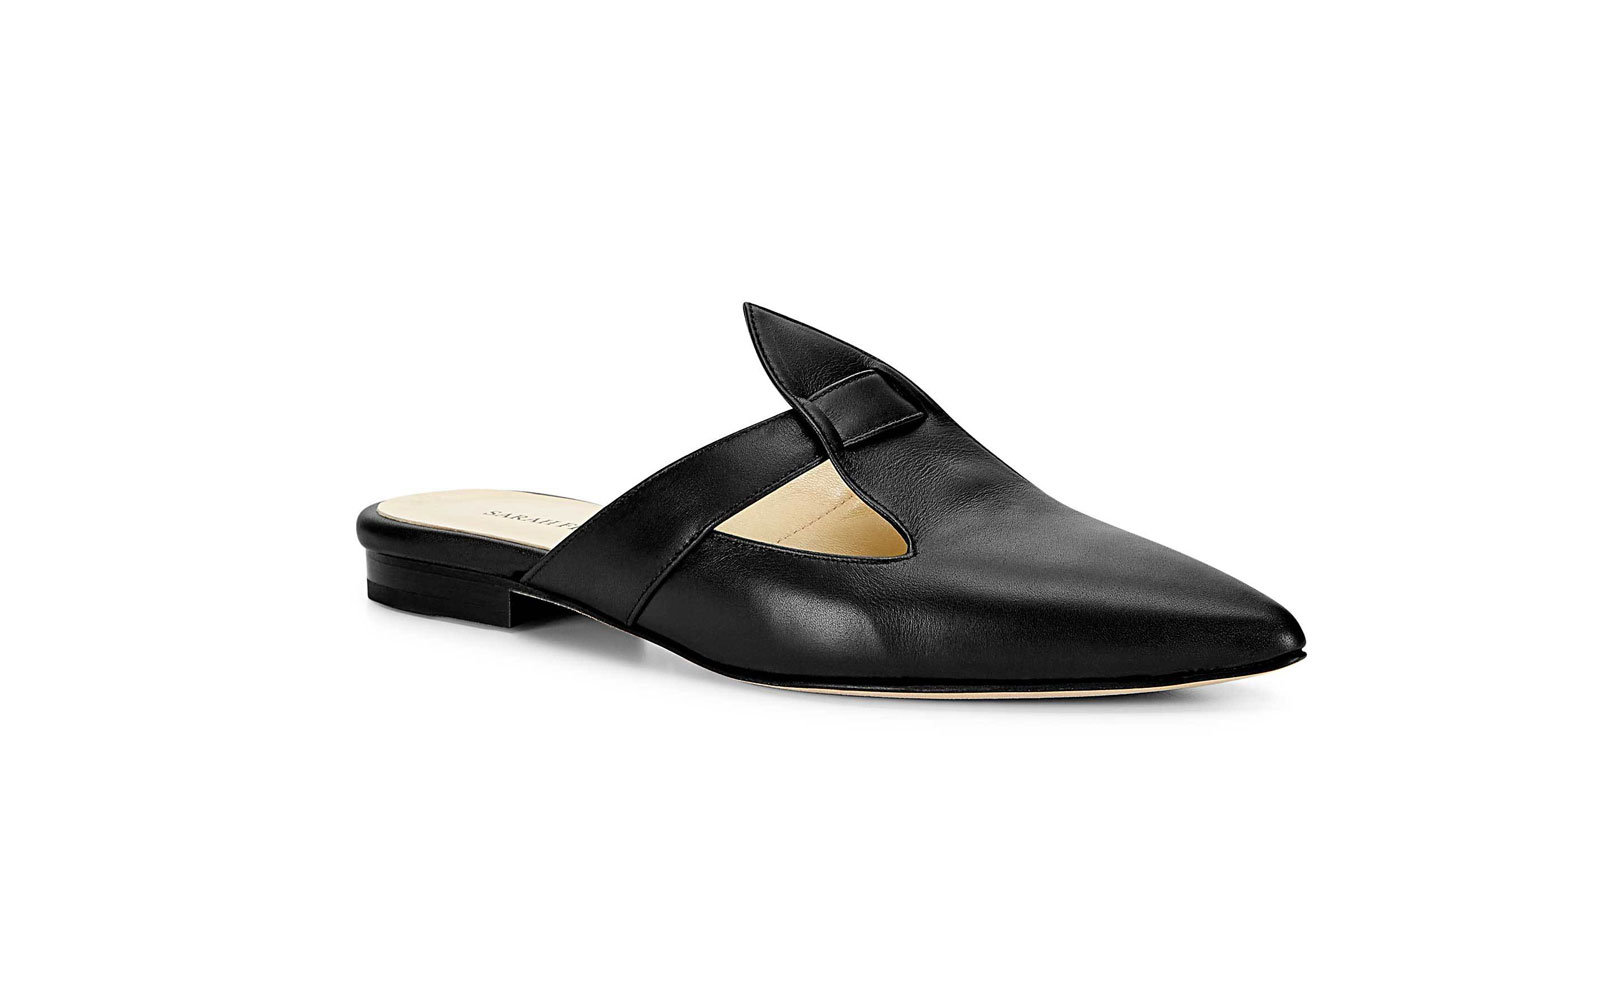 Sarah Flint Abigail Slide Handcrafted in Italy in Black Suede